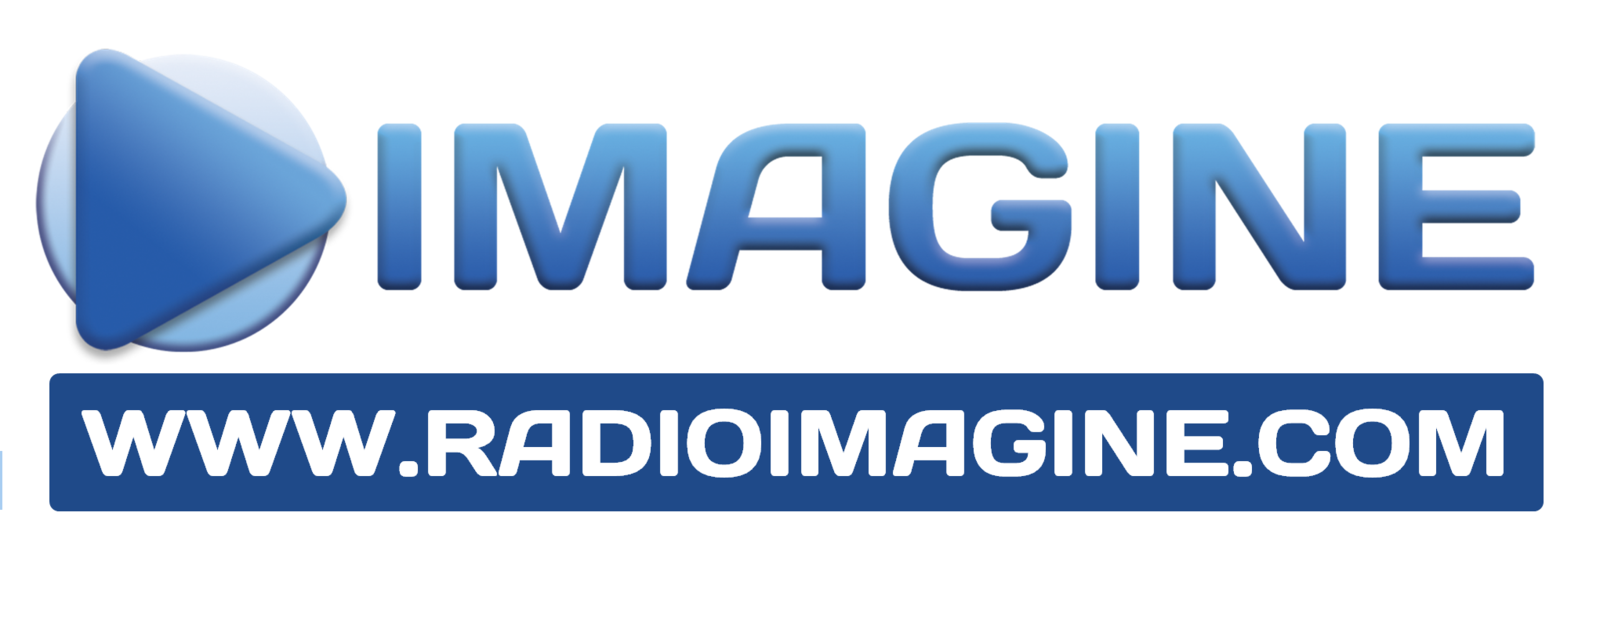 Radio Imagine - Animation : Le 14-17 du mercredi 13 avril 2016